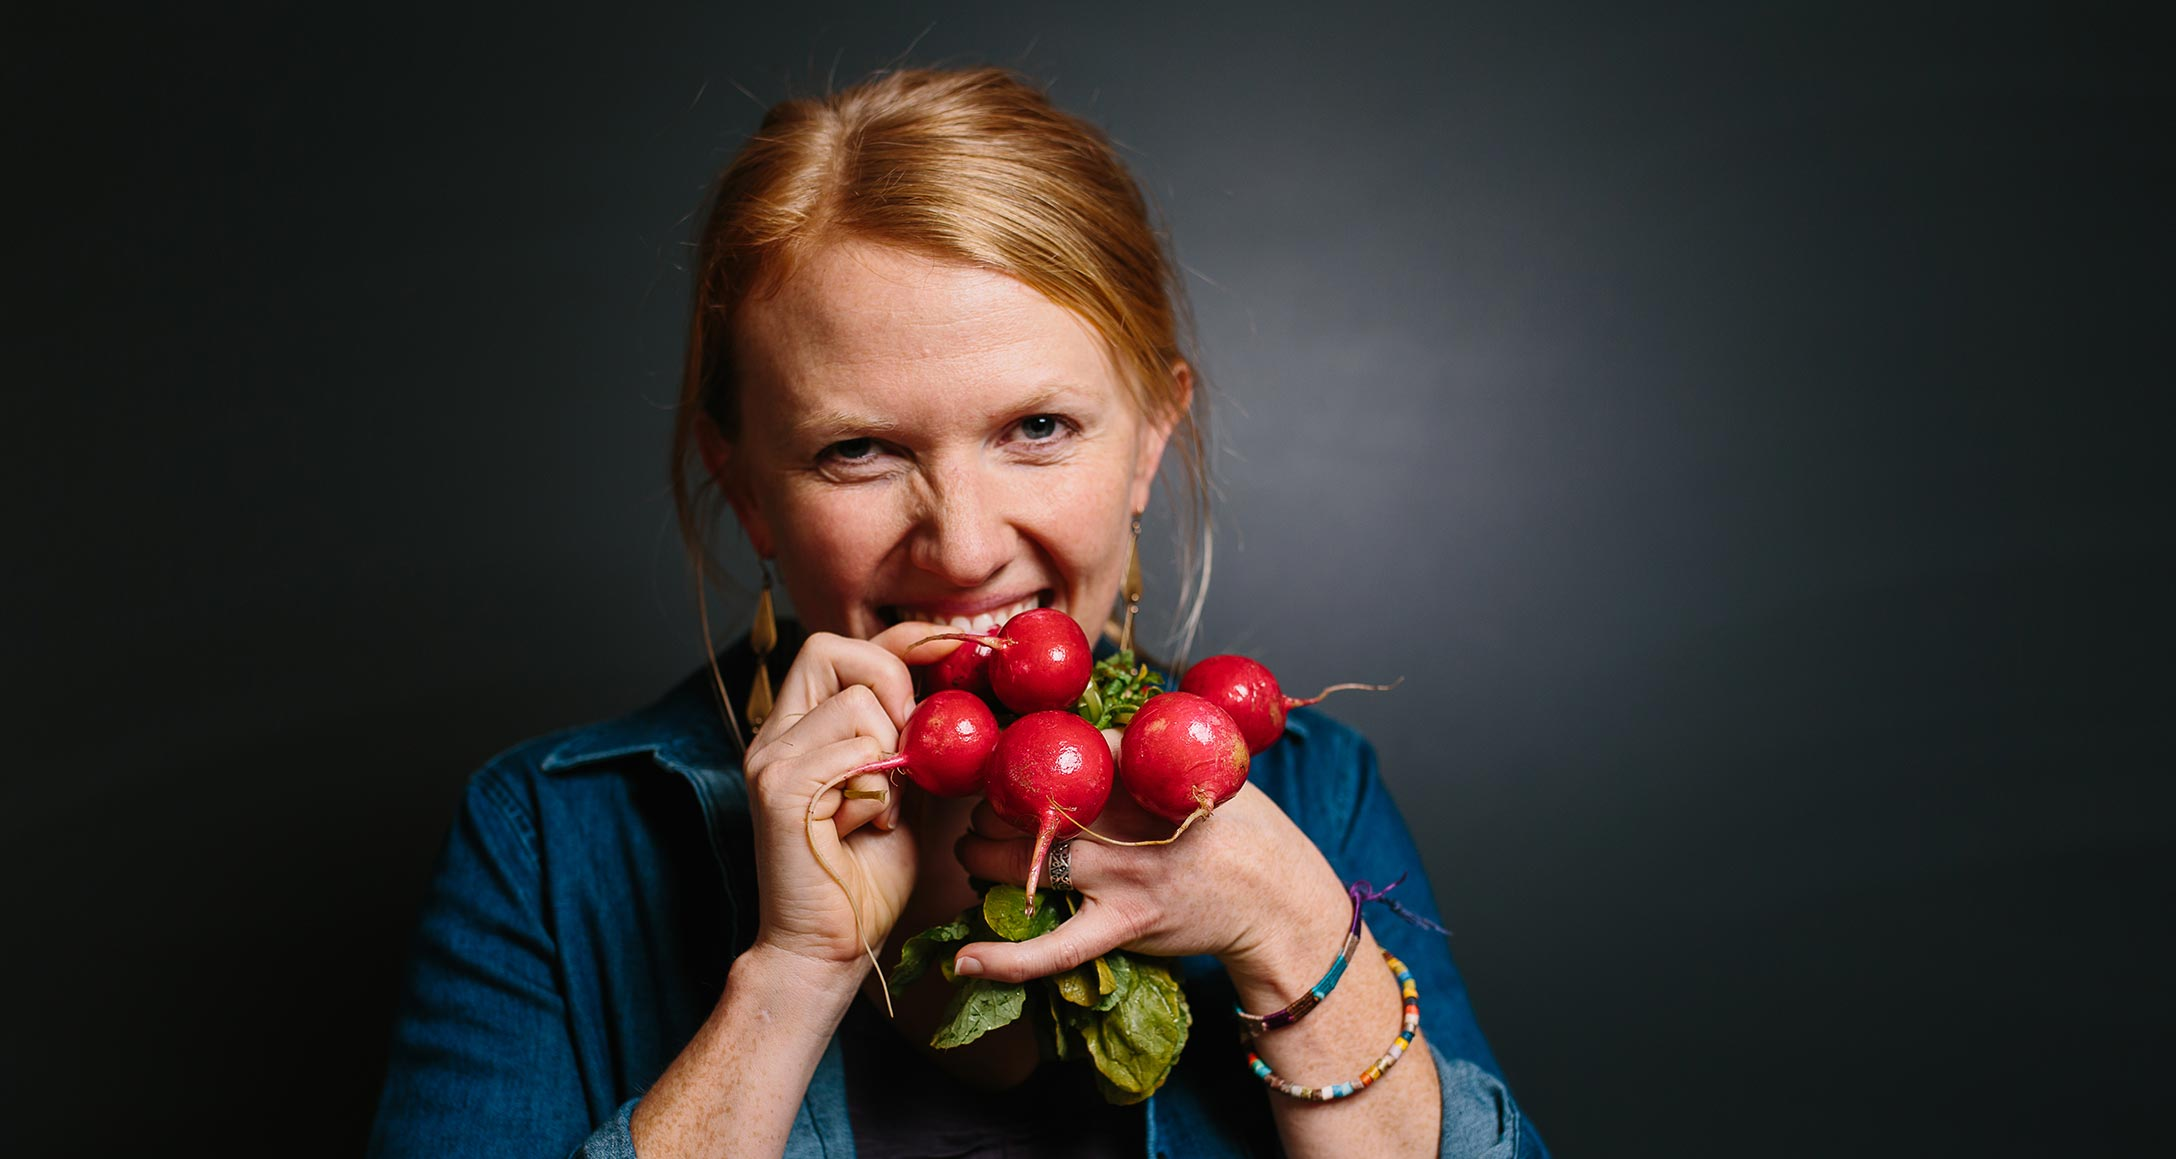 Sarah Berquist, program director for Sustainable Food and Farming, crunching fresh radishes